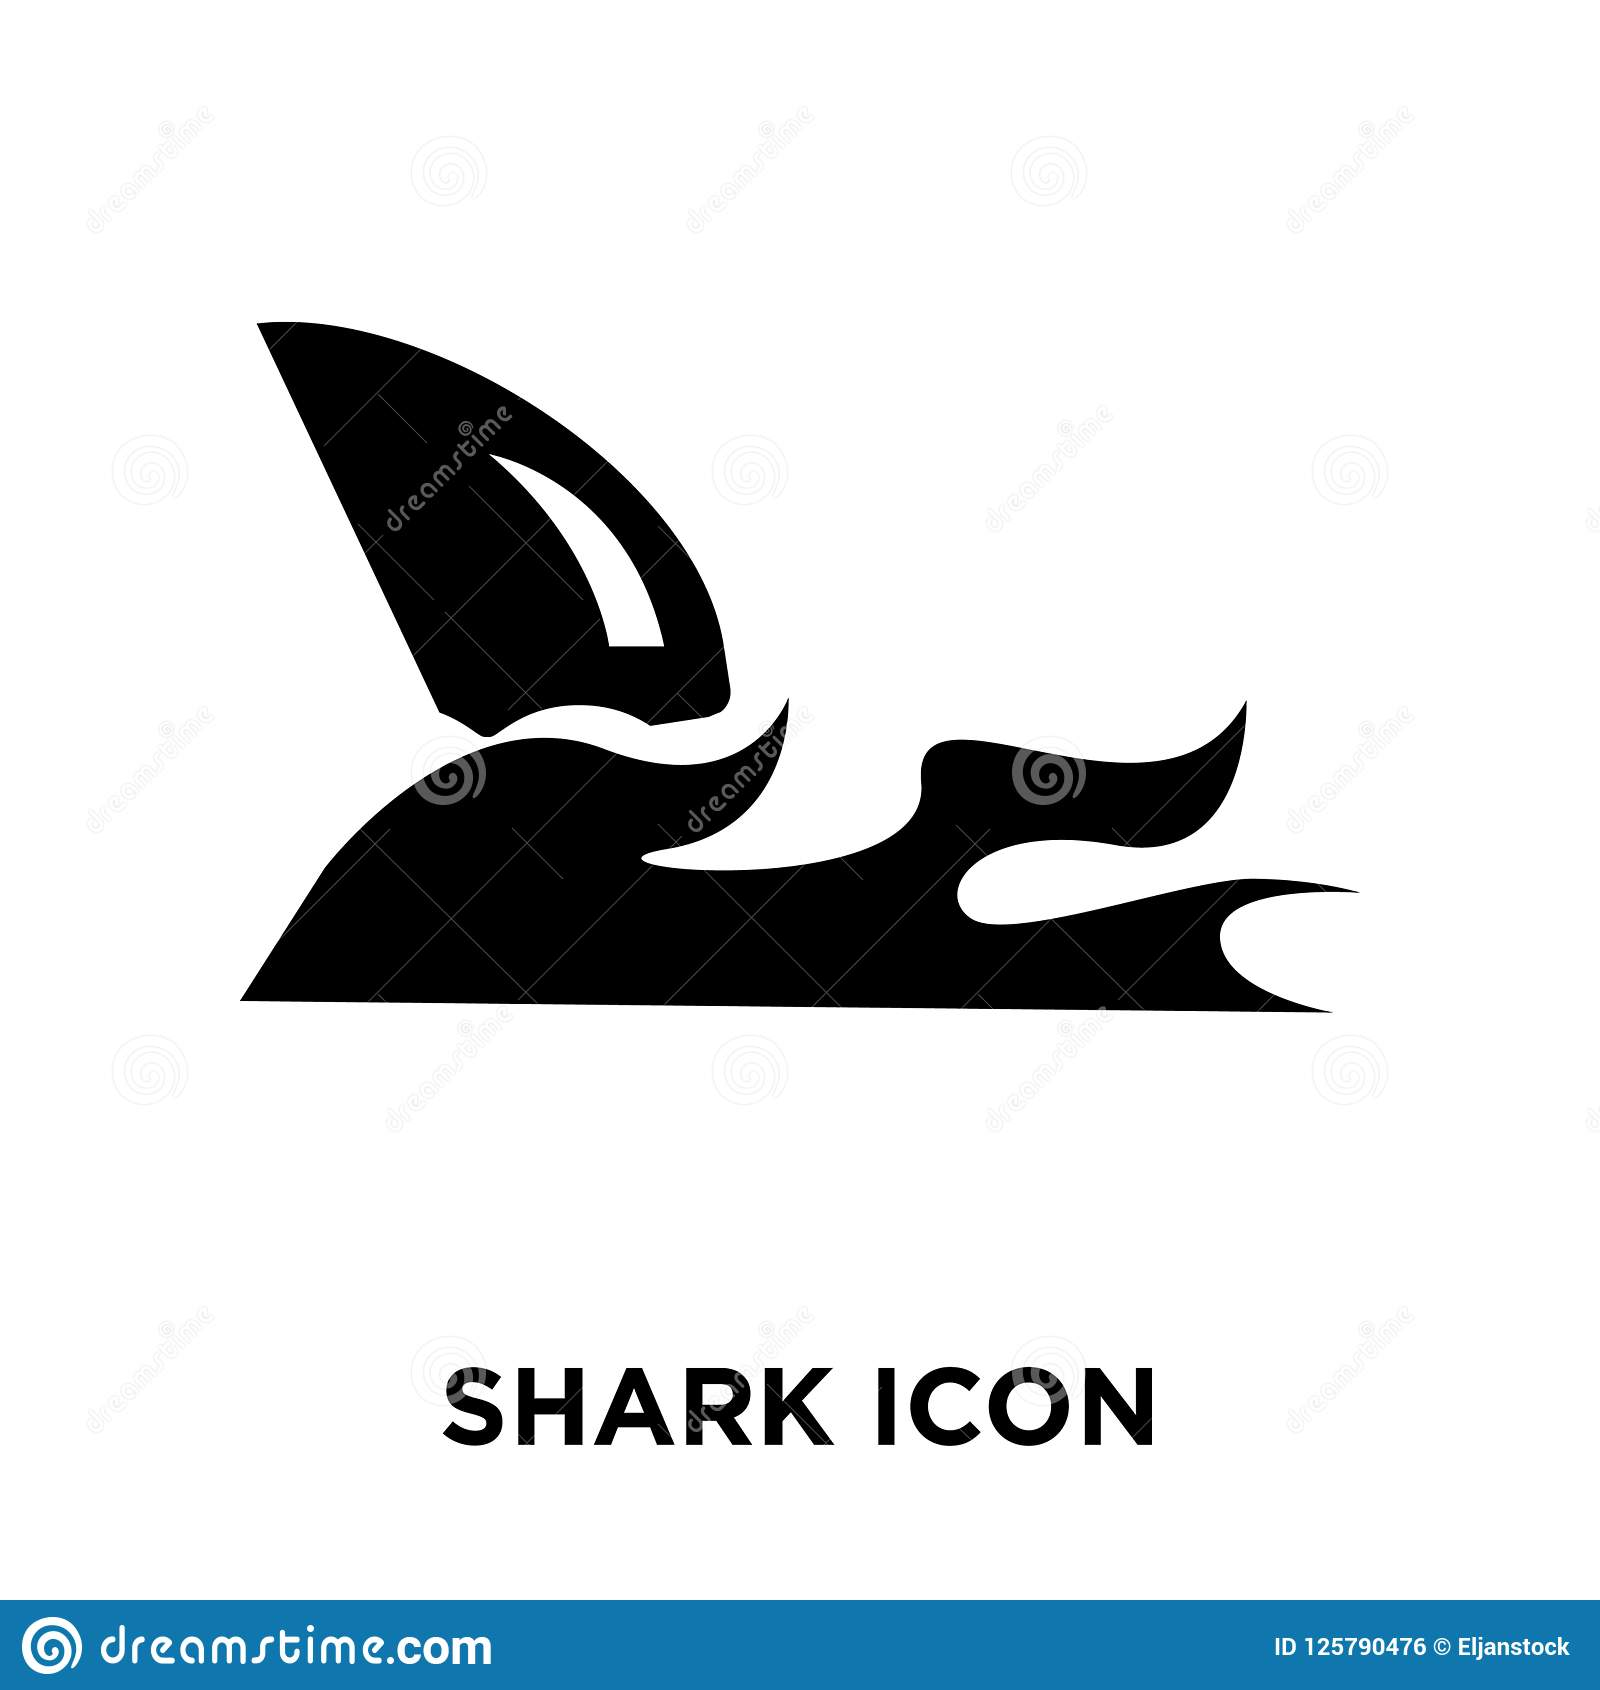 Shark icon vector isolated on white background, logo concept of